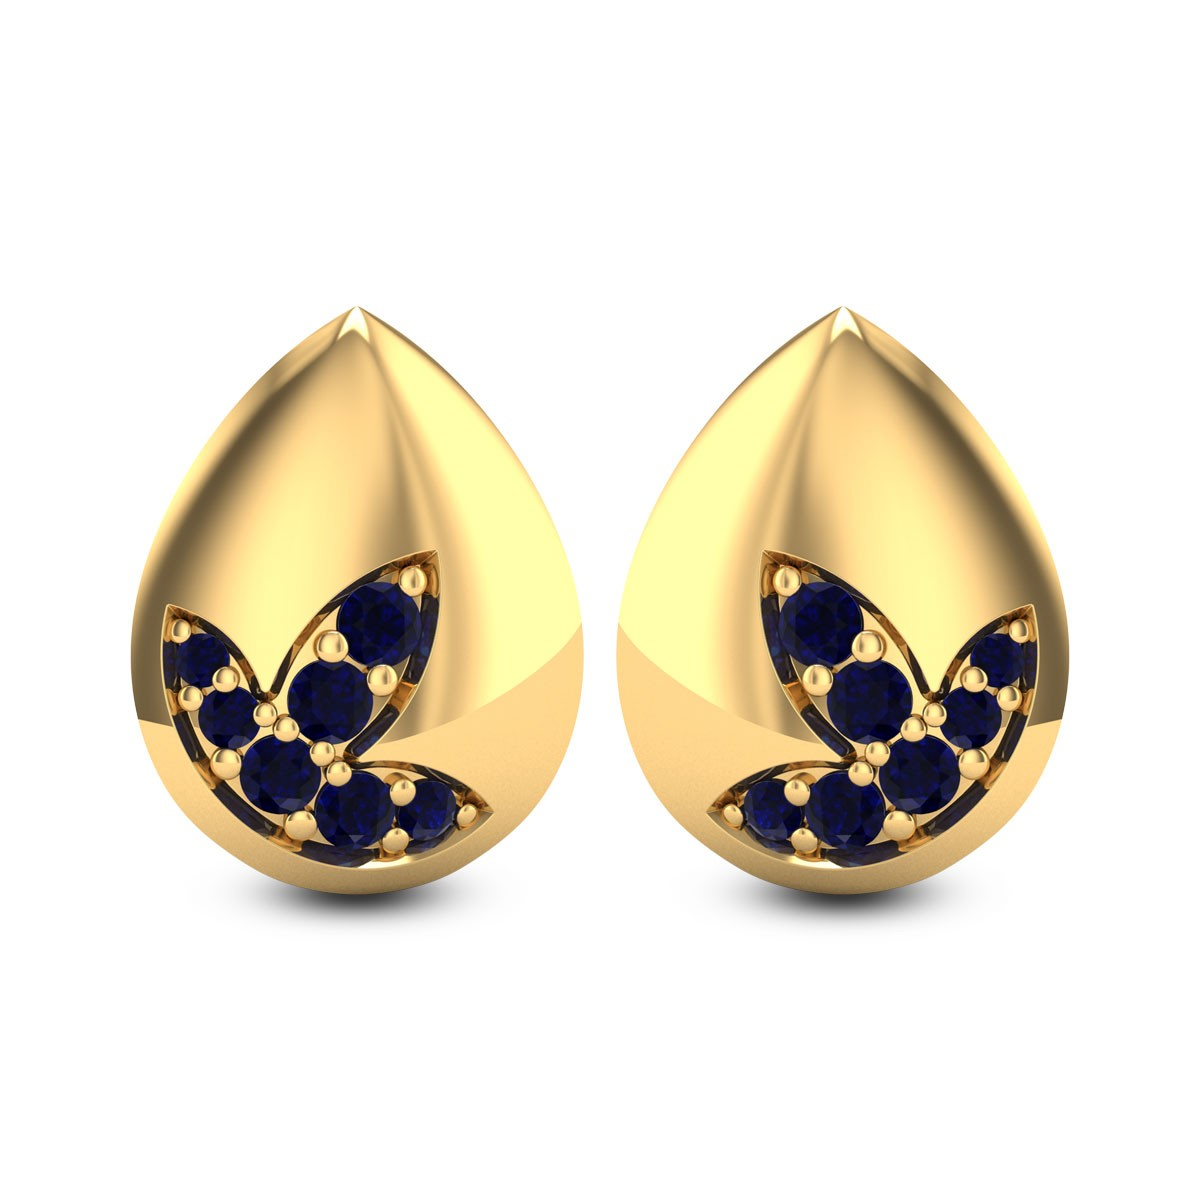 Sapphire Droplet Stud Earrings